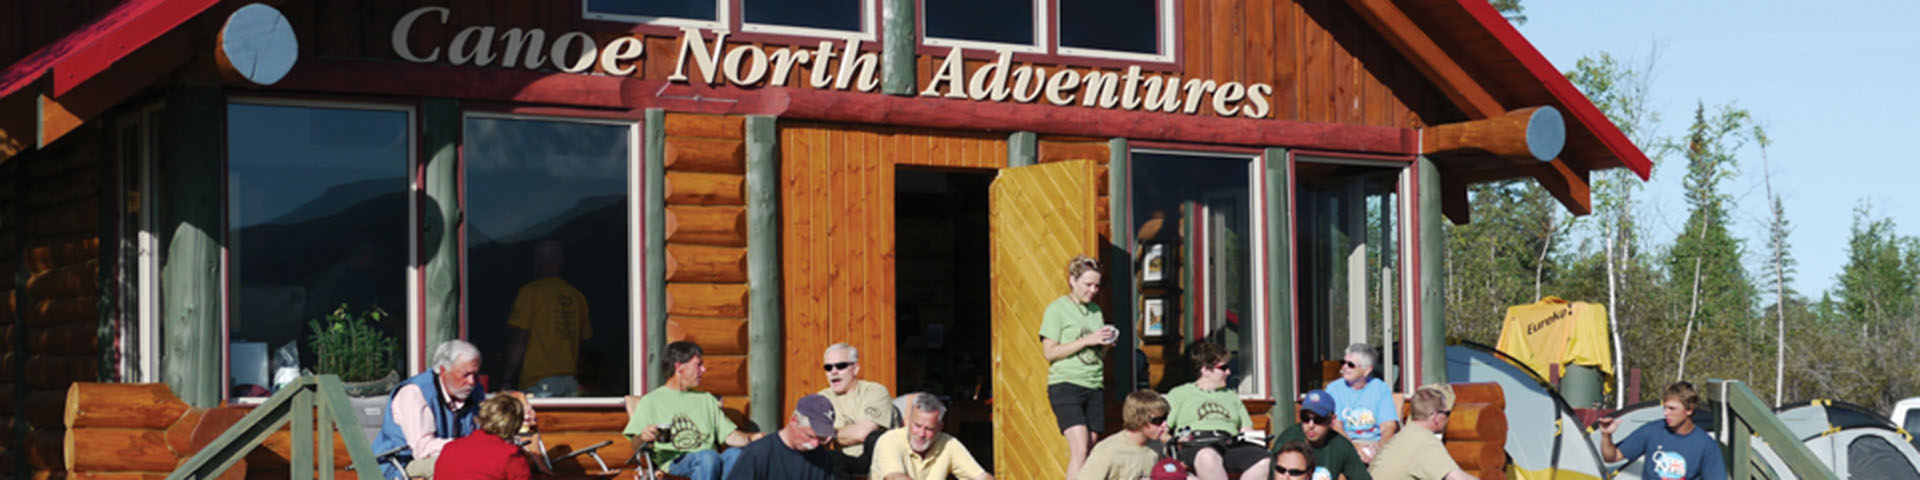 Canoe North Adventures Lodge and Outfitting Centre by Canoe North Adventures - Image 101